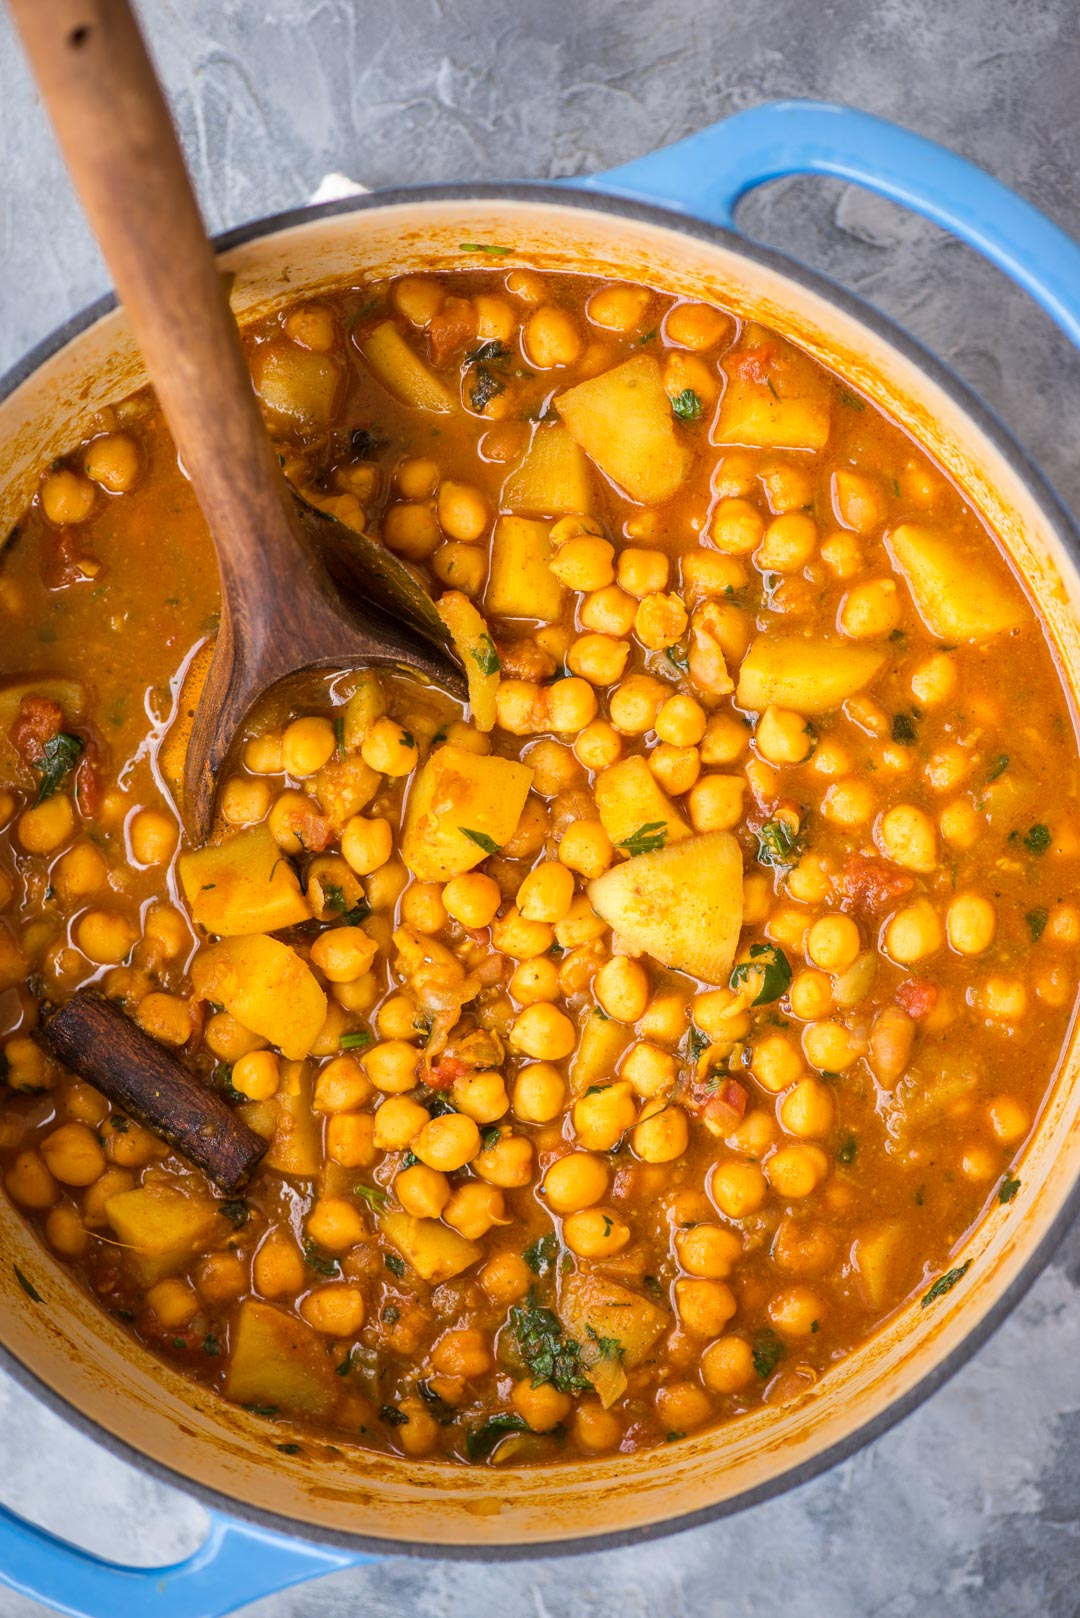 Chickpea curry with potato or Chana Aloo packed with Indian flavours, nutritious and needs less than 30 minutes to make. This vegan chickpea curry is best served with rice or naan.